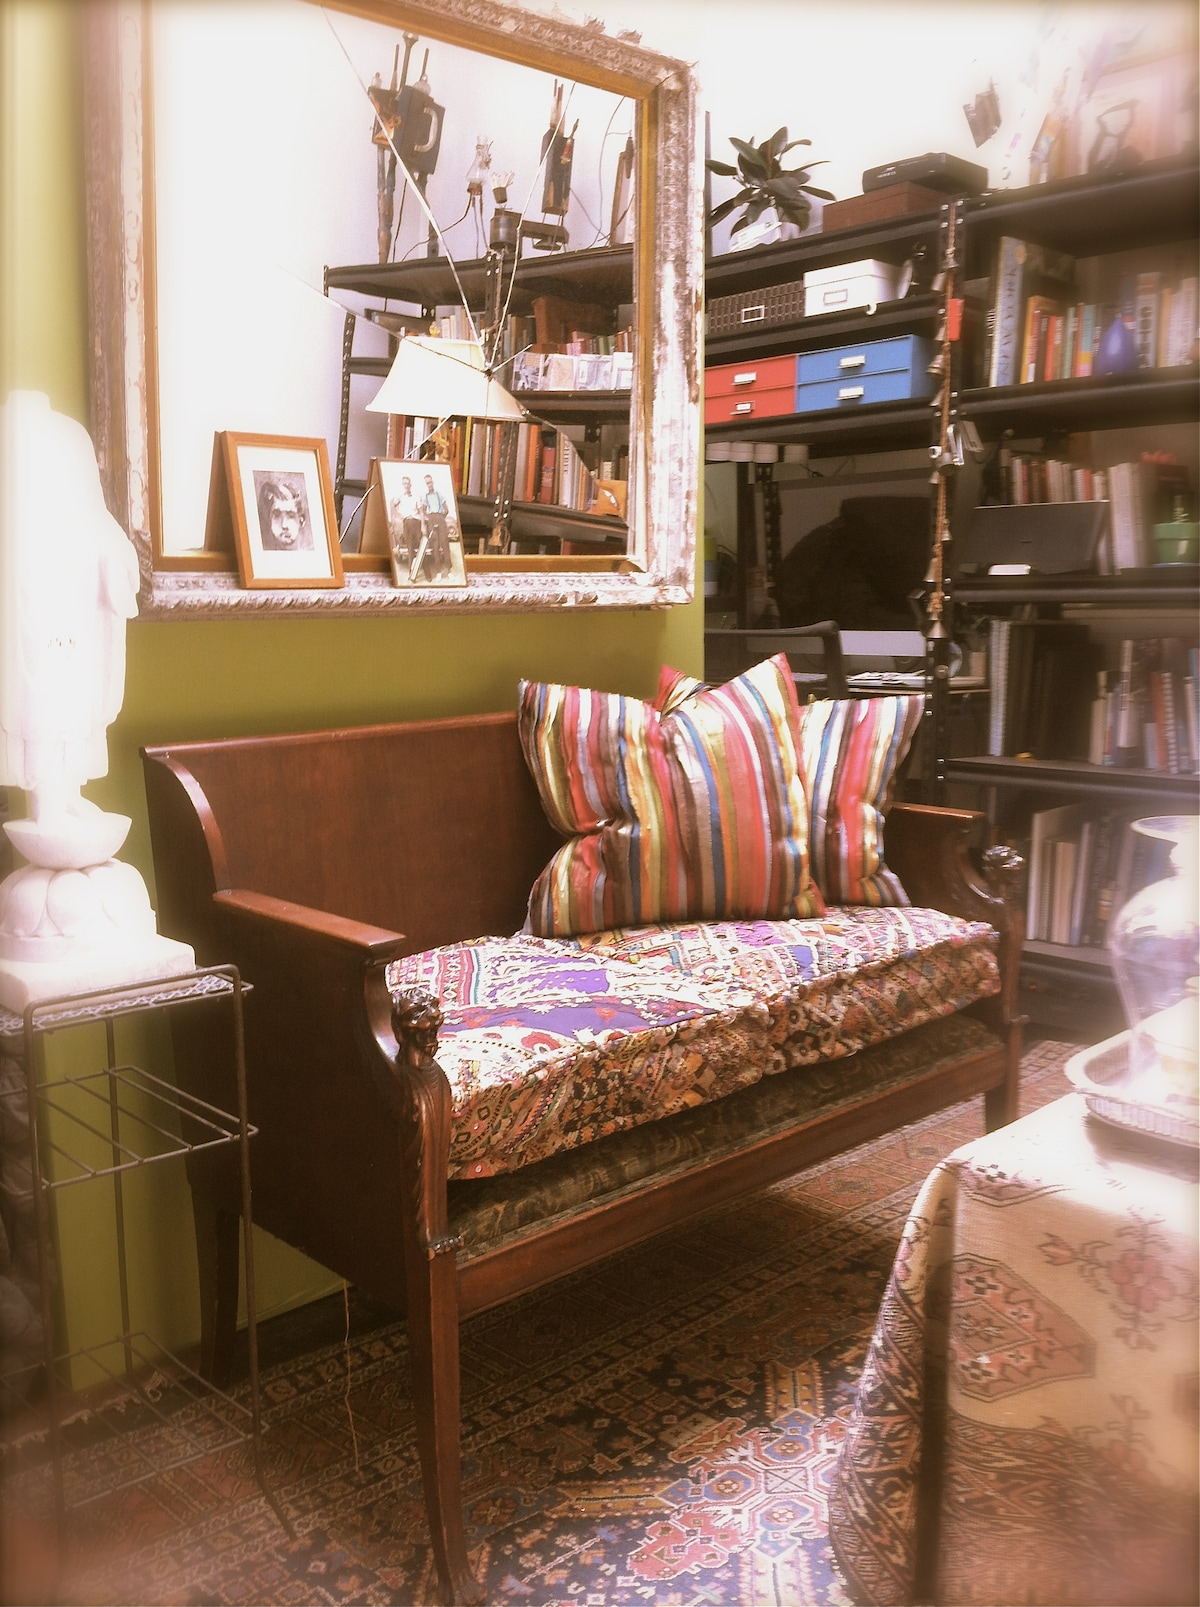 Join us in our sitting room for morning coffee or tea.